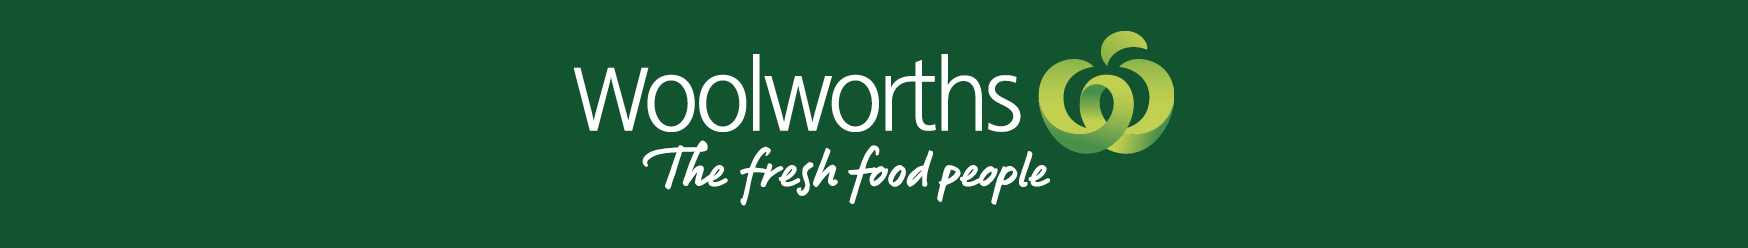 Career Opportunities Online Personal Shopper Woolworths Customer